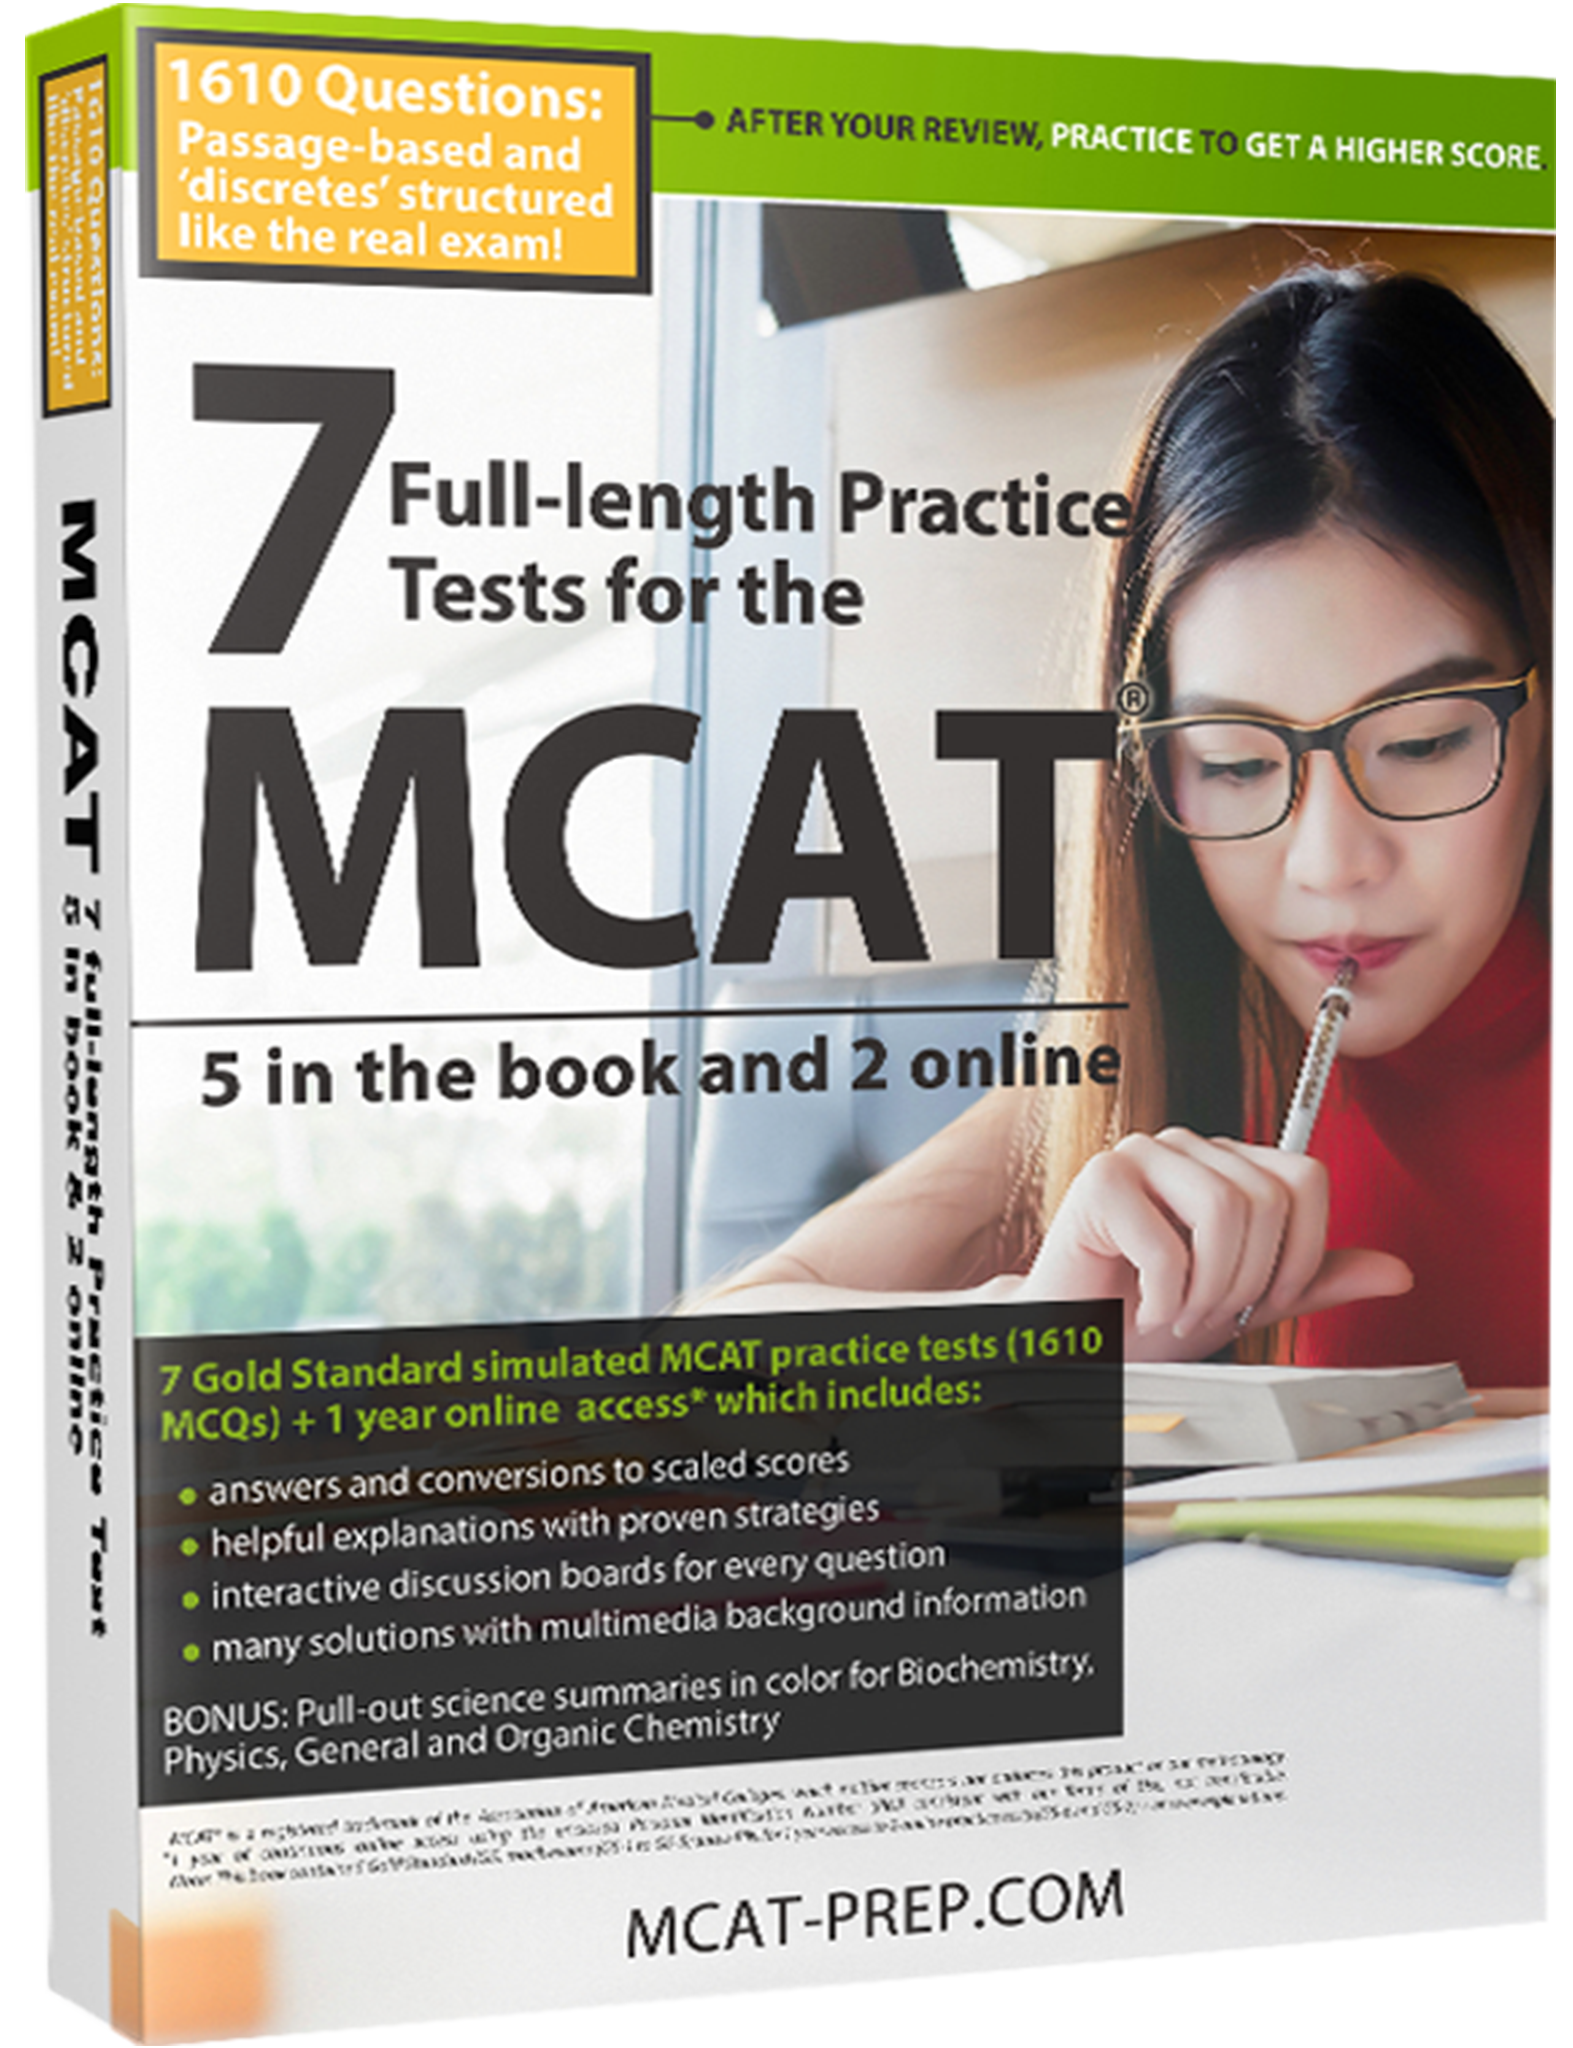 MCAT Sample Questions | Try out these free MCAT questions